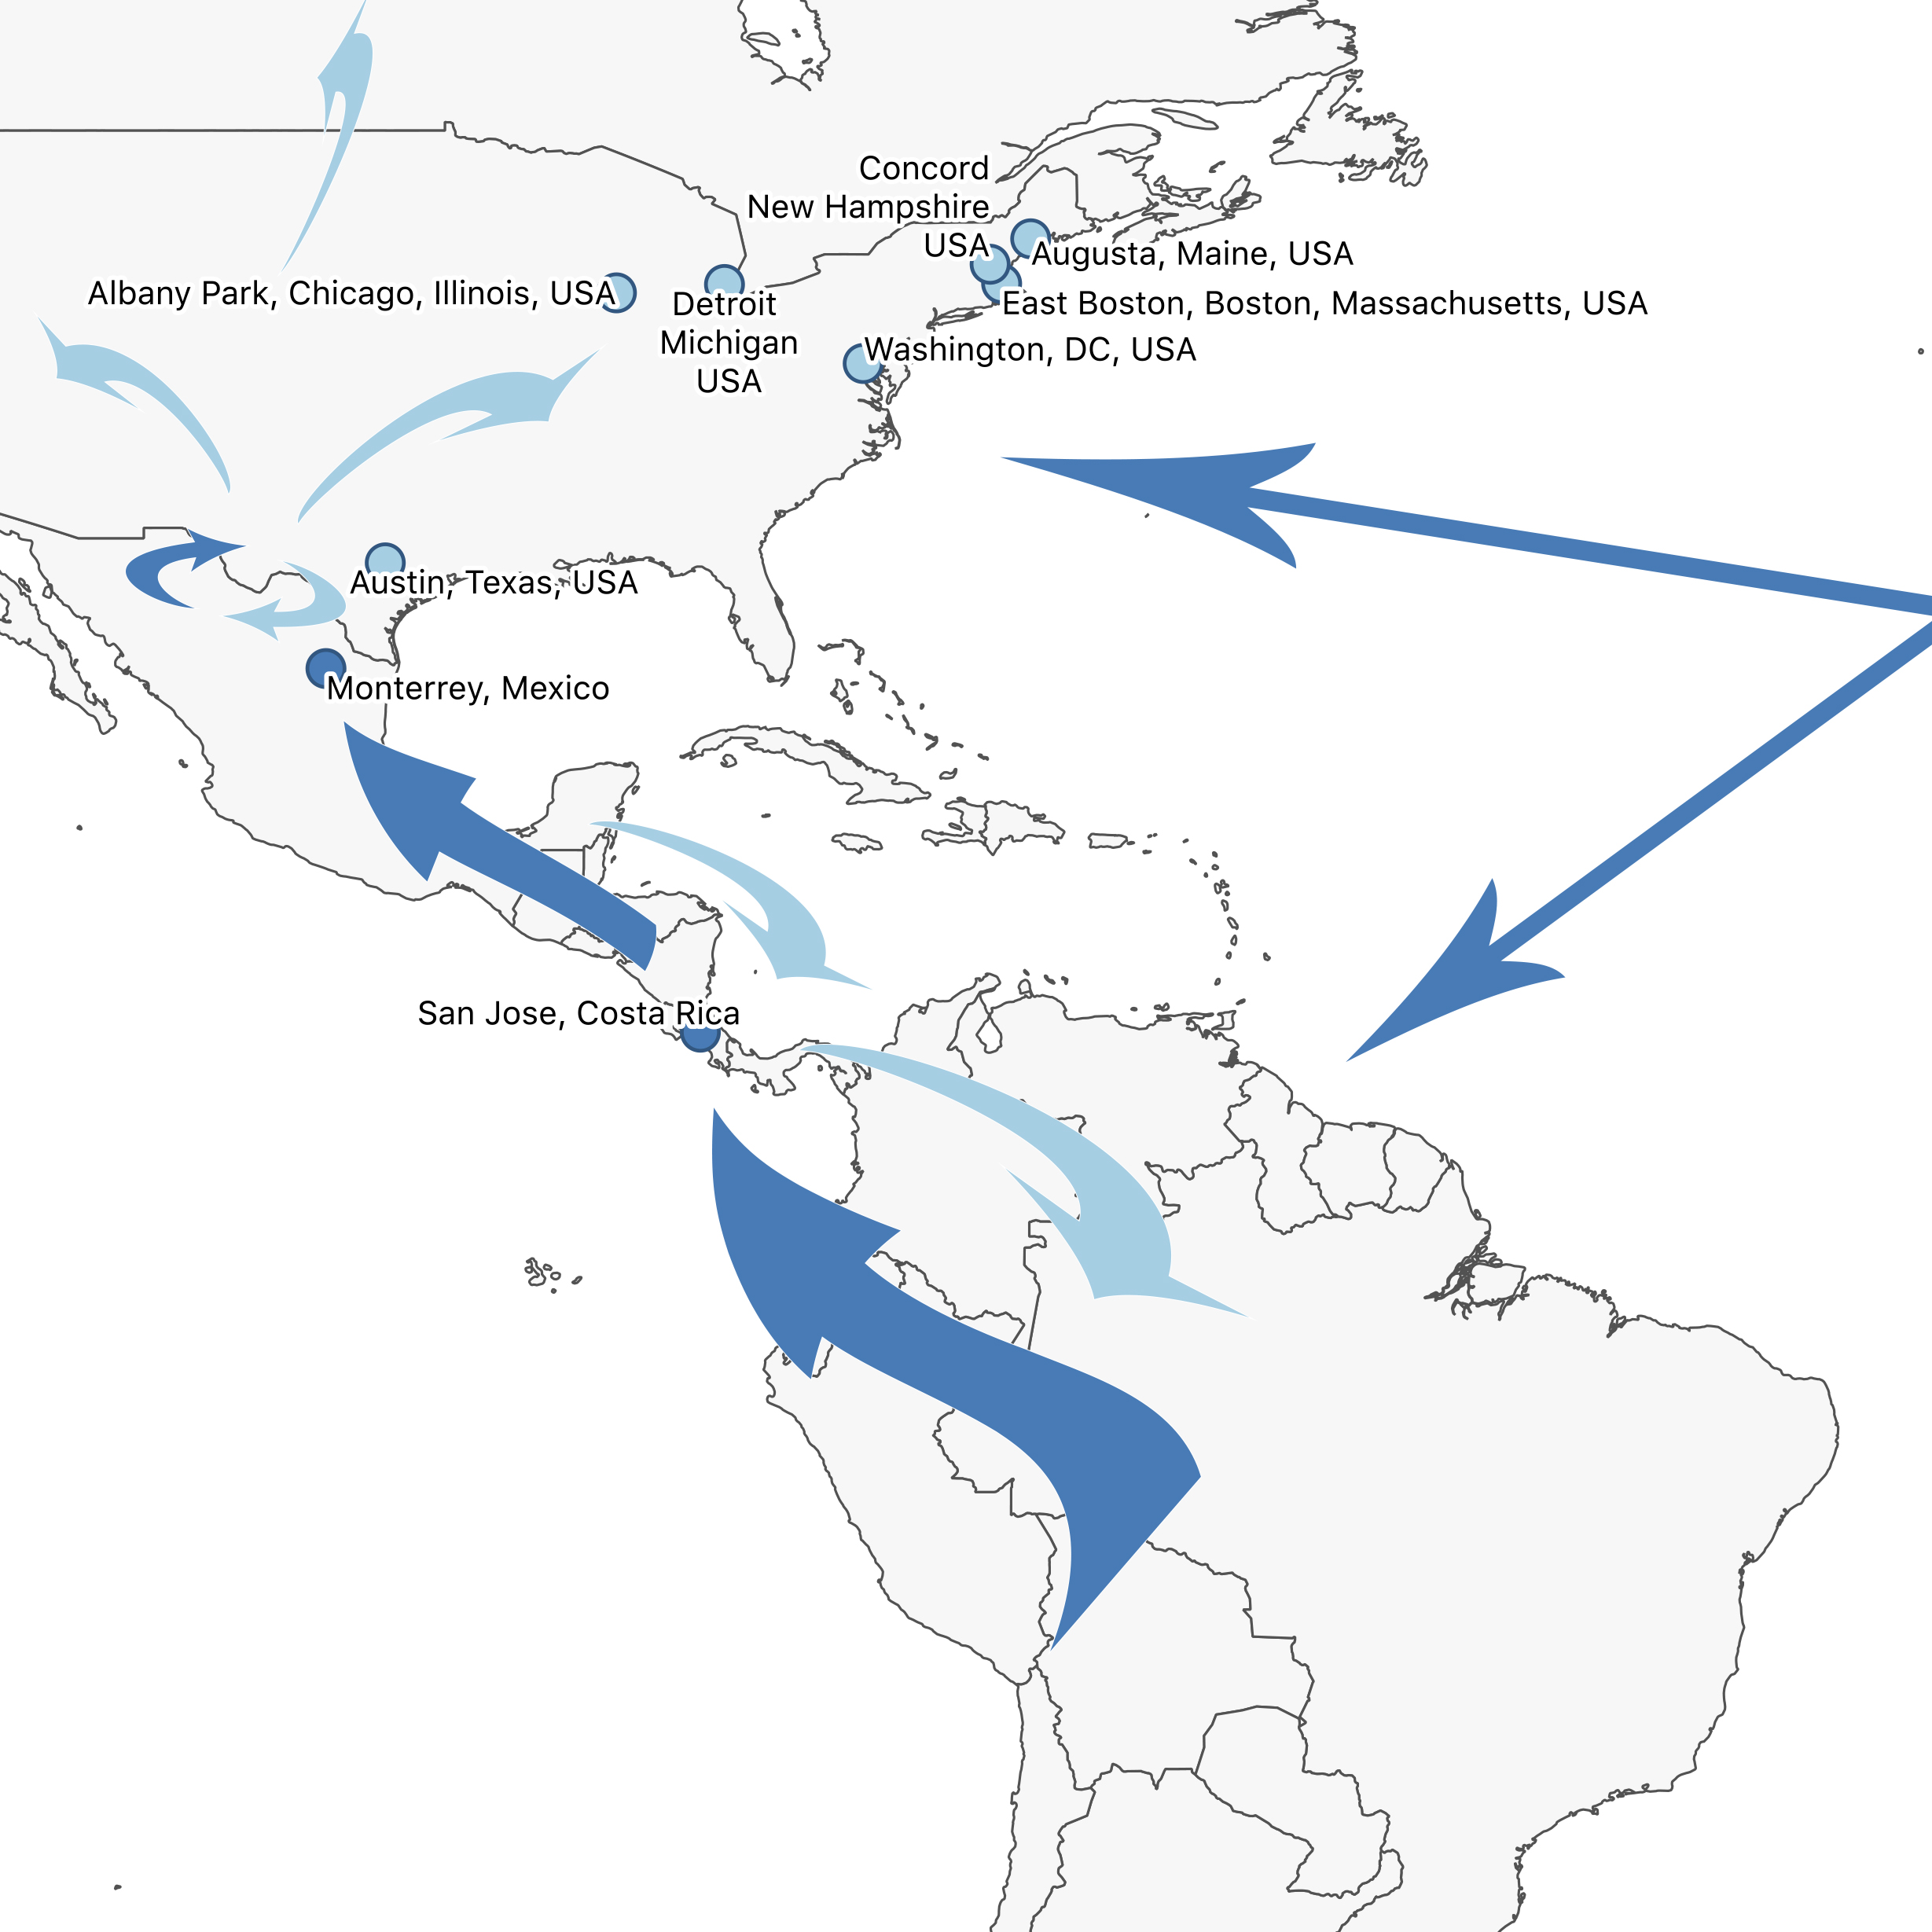 The Americas Route